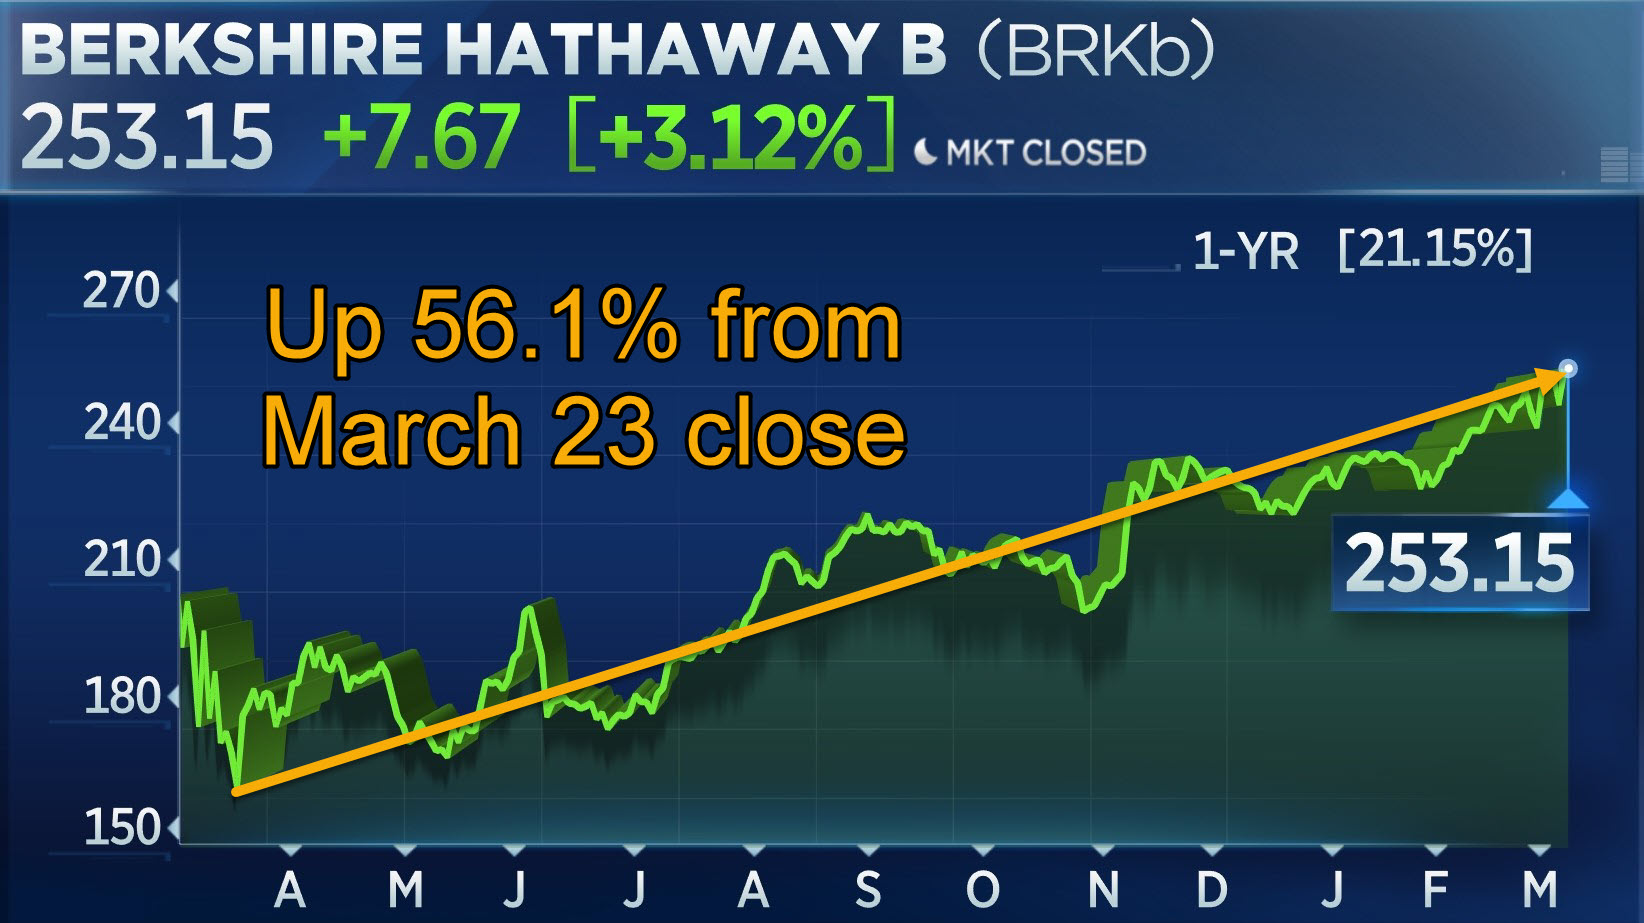 Berkshire Hathaway Class B shares 1-year chart: Up 56.1% from March 23 close